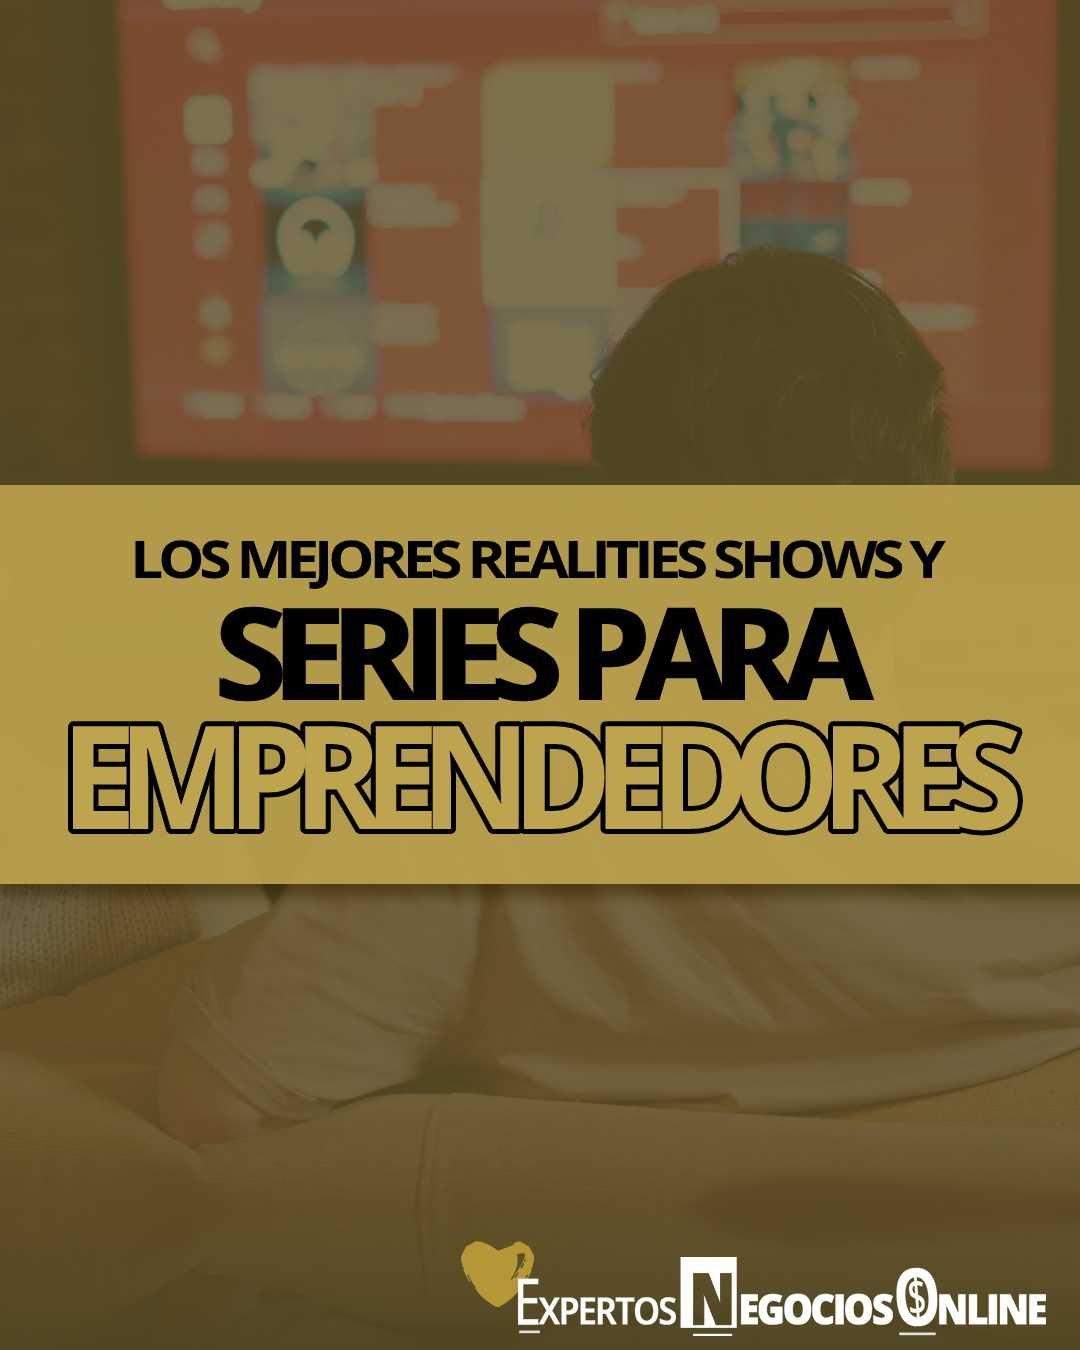 Mejores series para emprendedores y realities shows